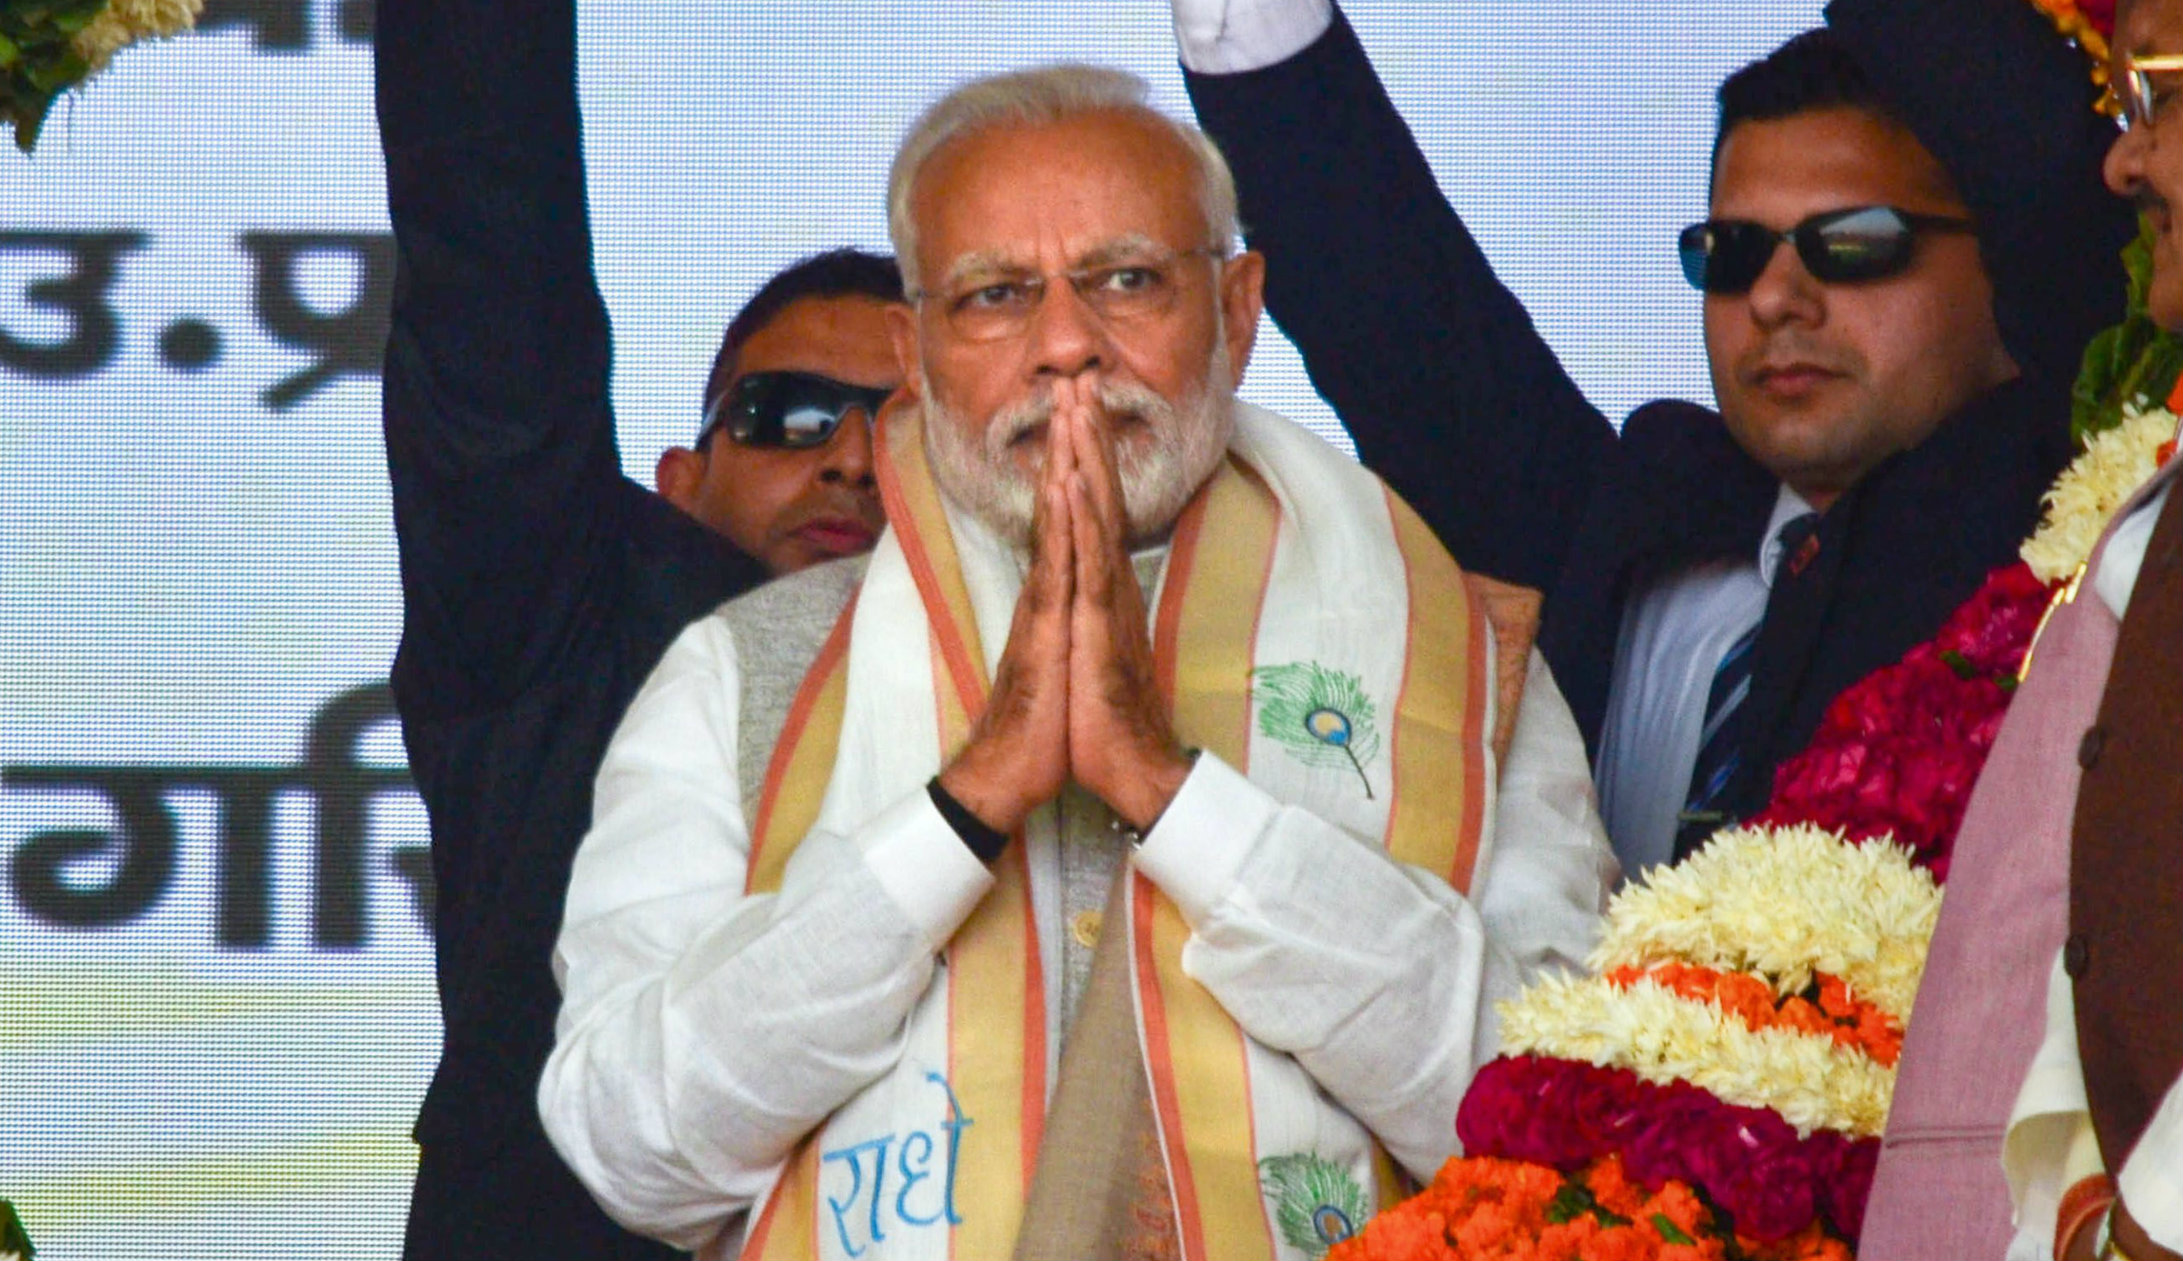 Narendra Modi at an event in Agra on Wednesday.